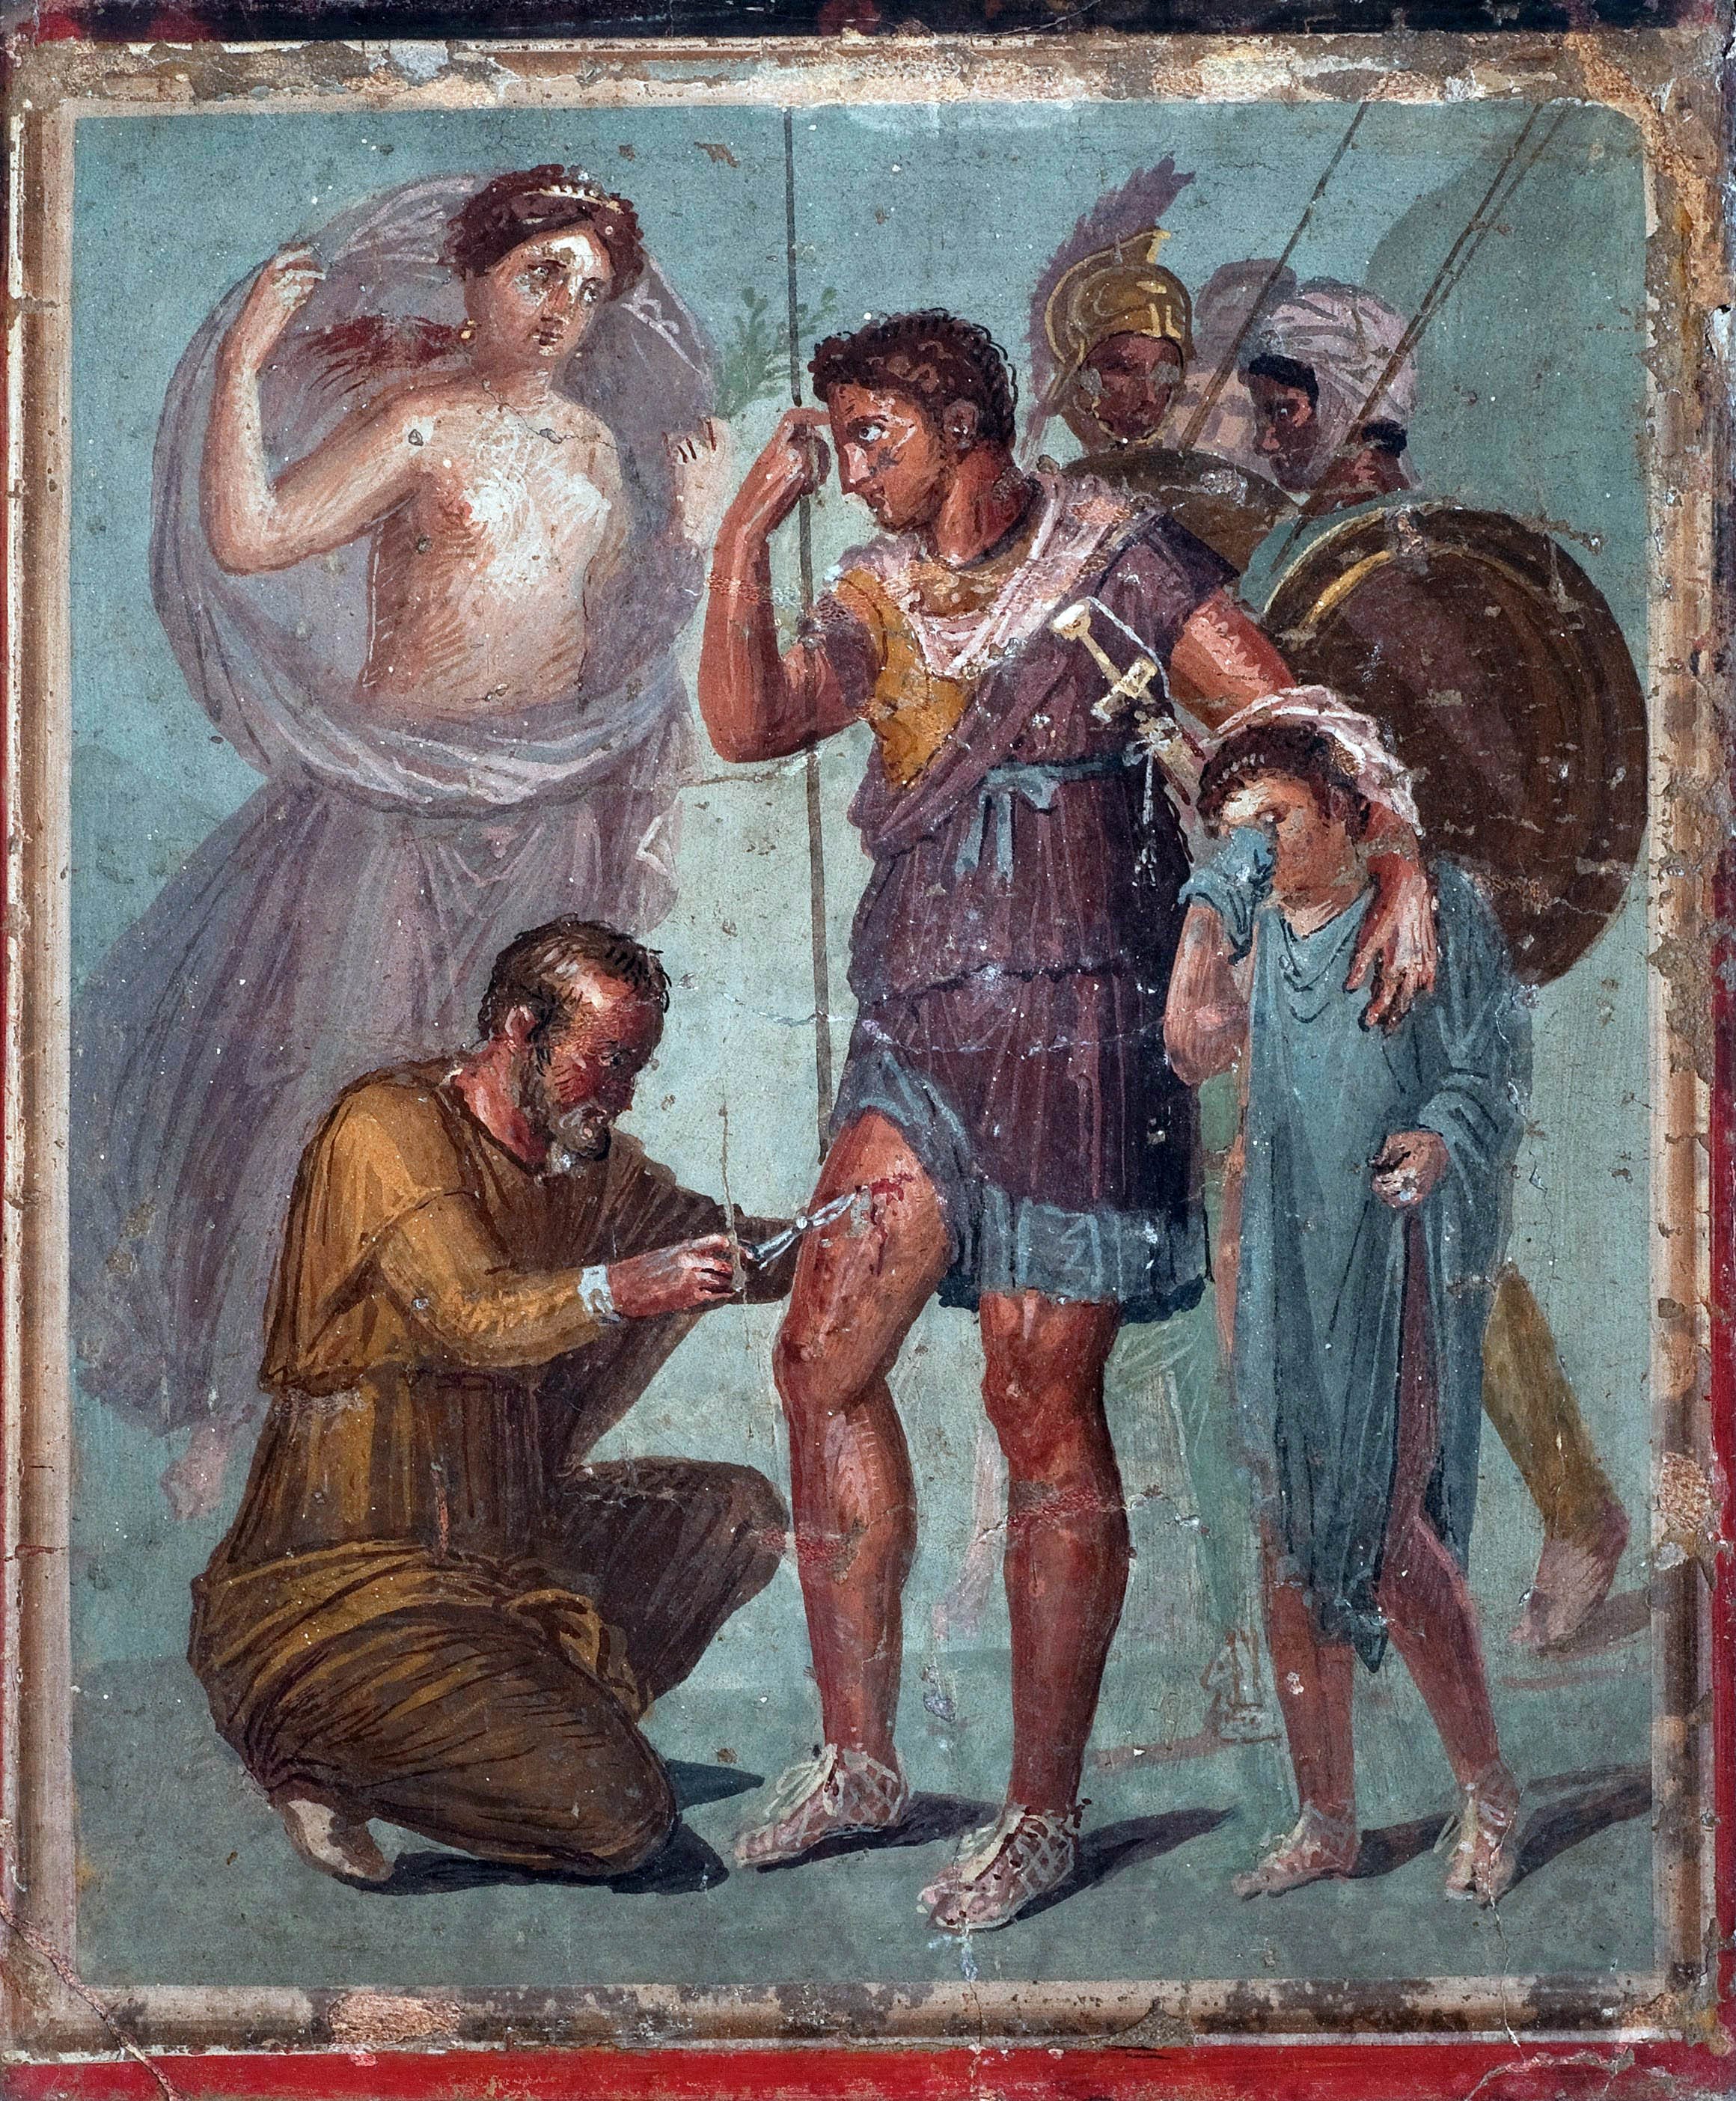 Iapyx removing arrowhead from Aeneas